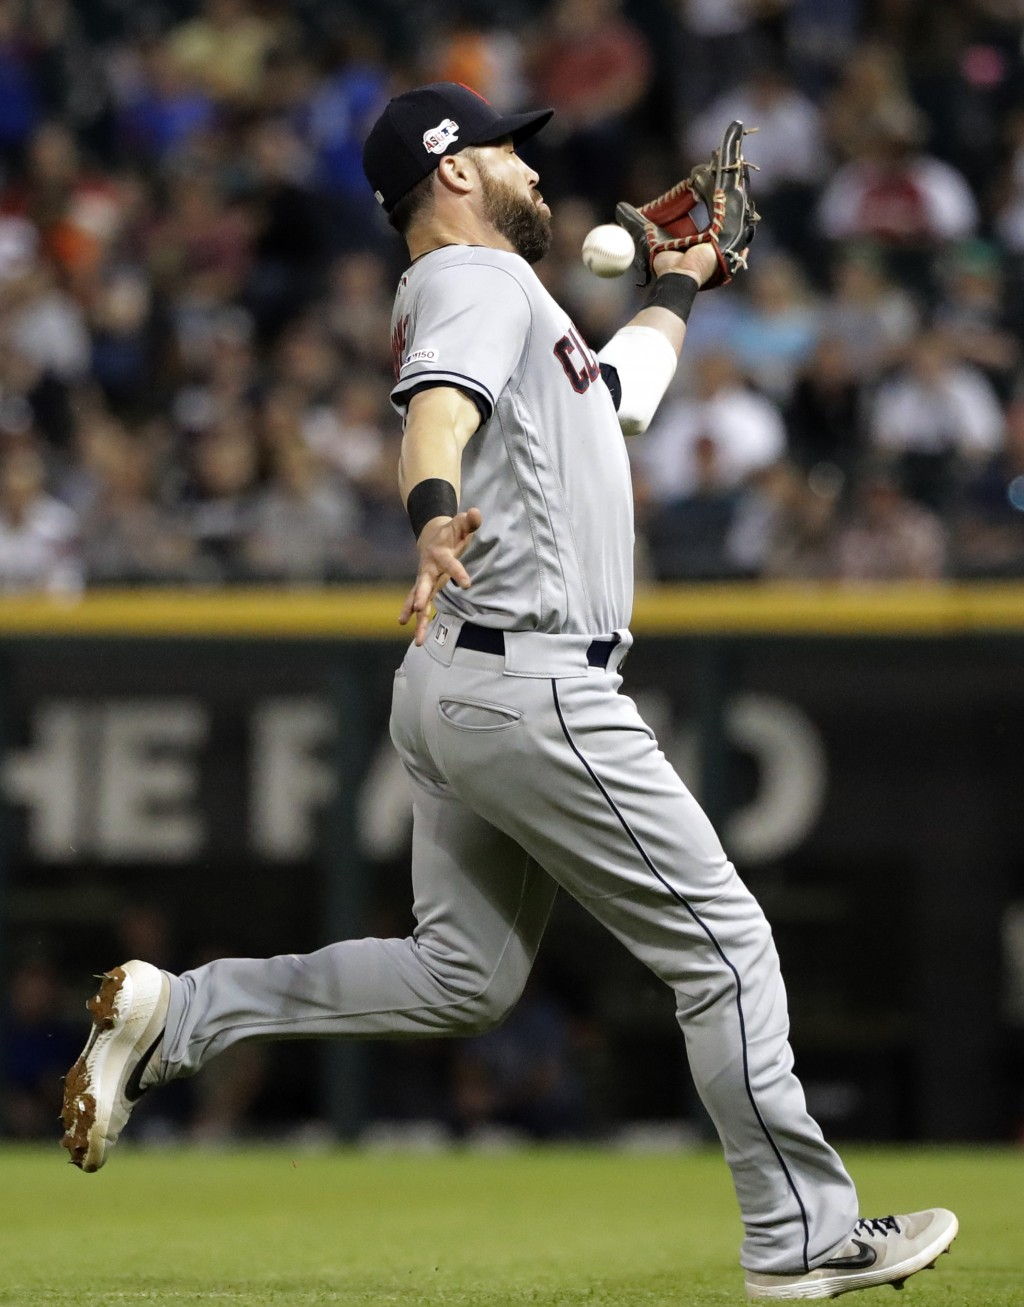 Cleveland Indians second baseman Jason Kipnis cannot make the play on a single by Chicago White Sox's Seby Zavala during the fourth inning of a baseba...